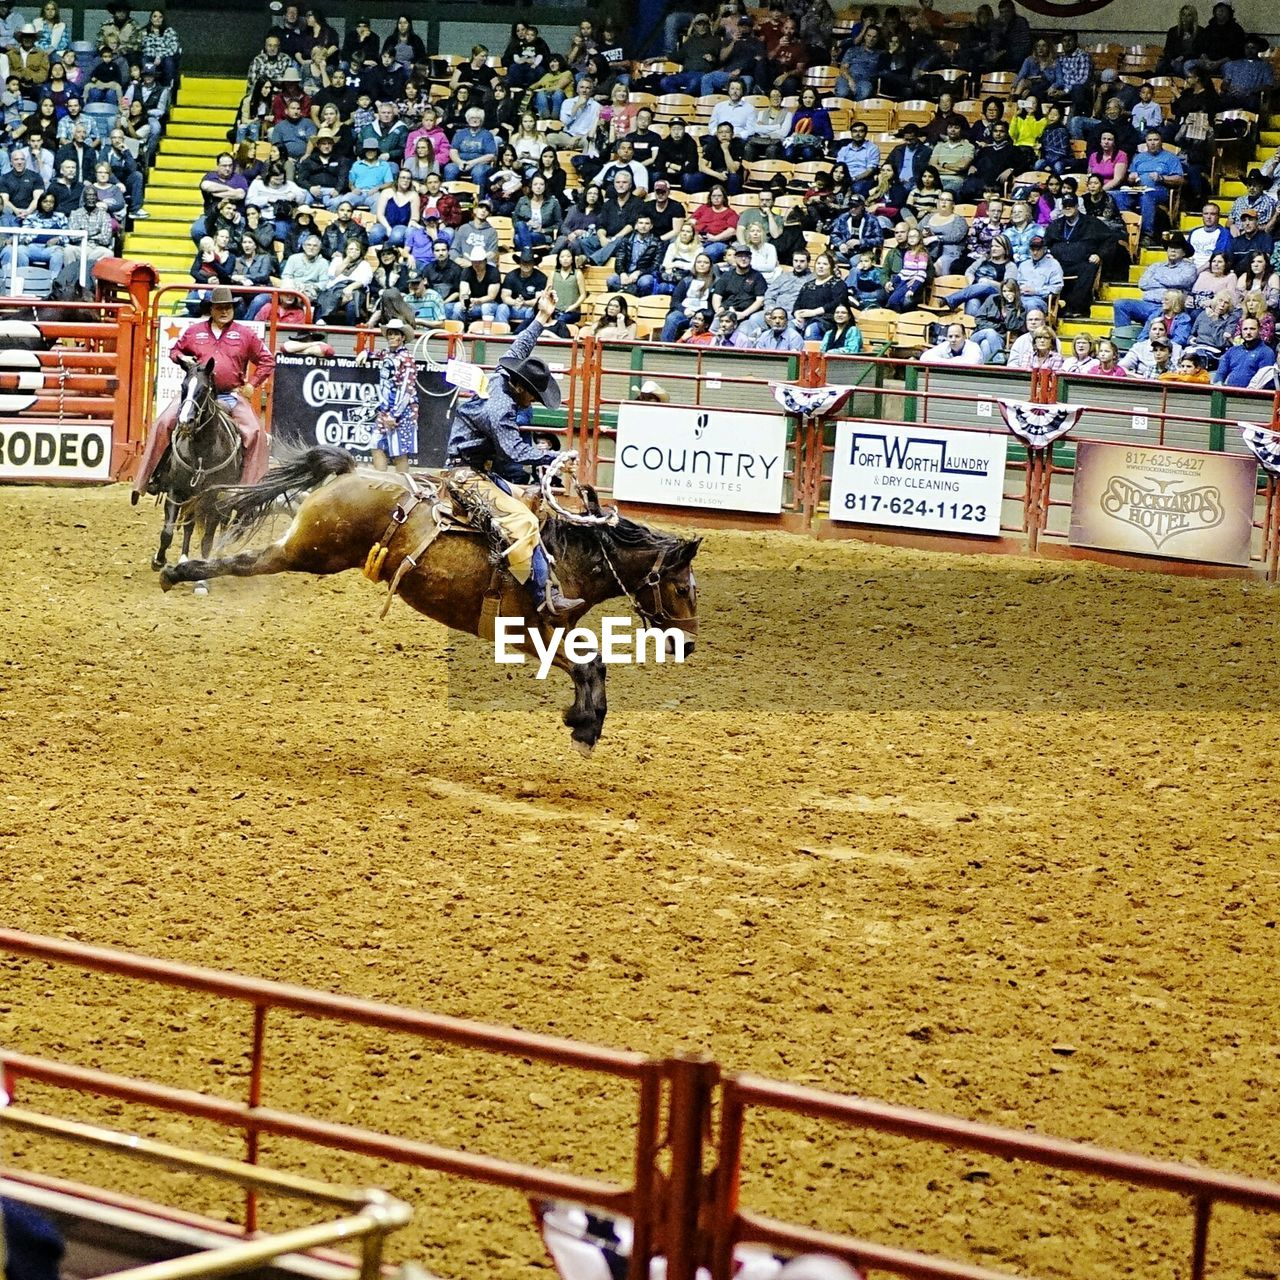 horse, domestic animals, jockey, horse racing, mammal, running, sports race, event, competition, spectator, large group of people, real people, crowd, stadium, day, men, sports track, audience, outdoors, fan - enthusiast, adult, people